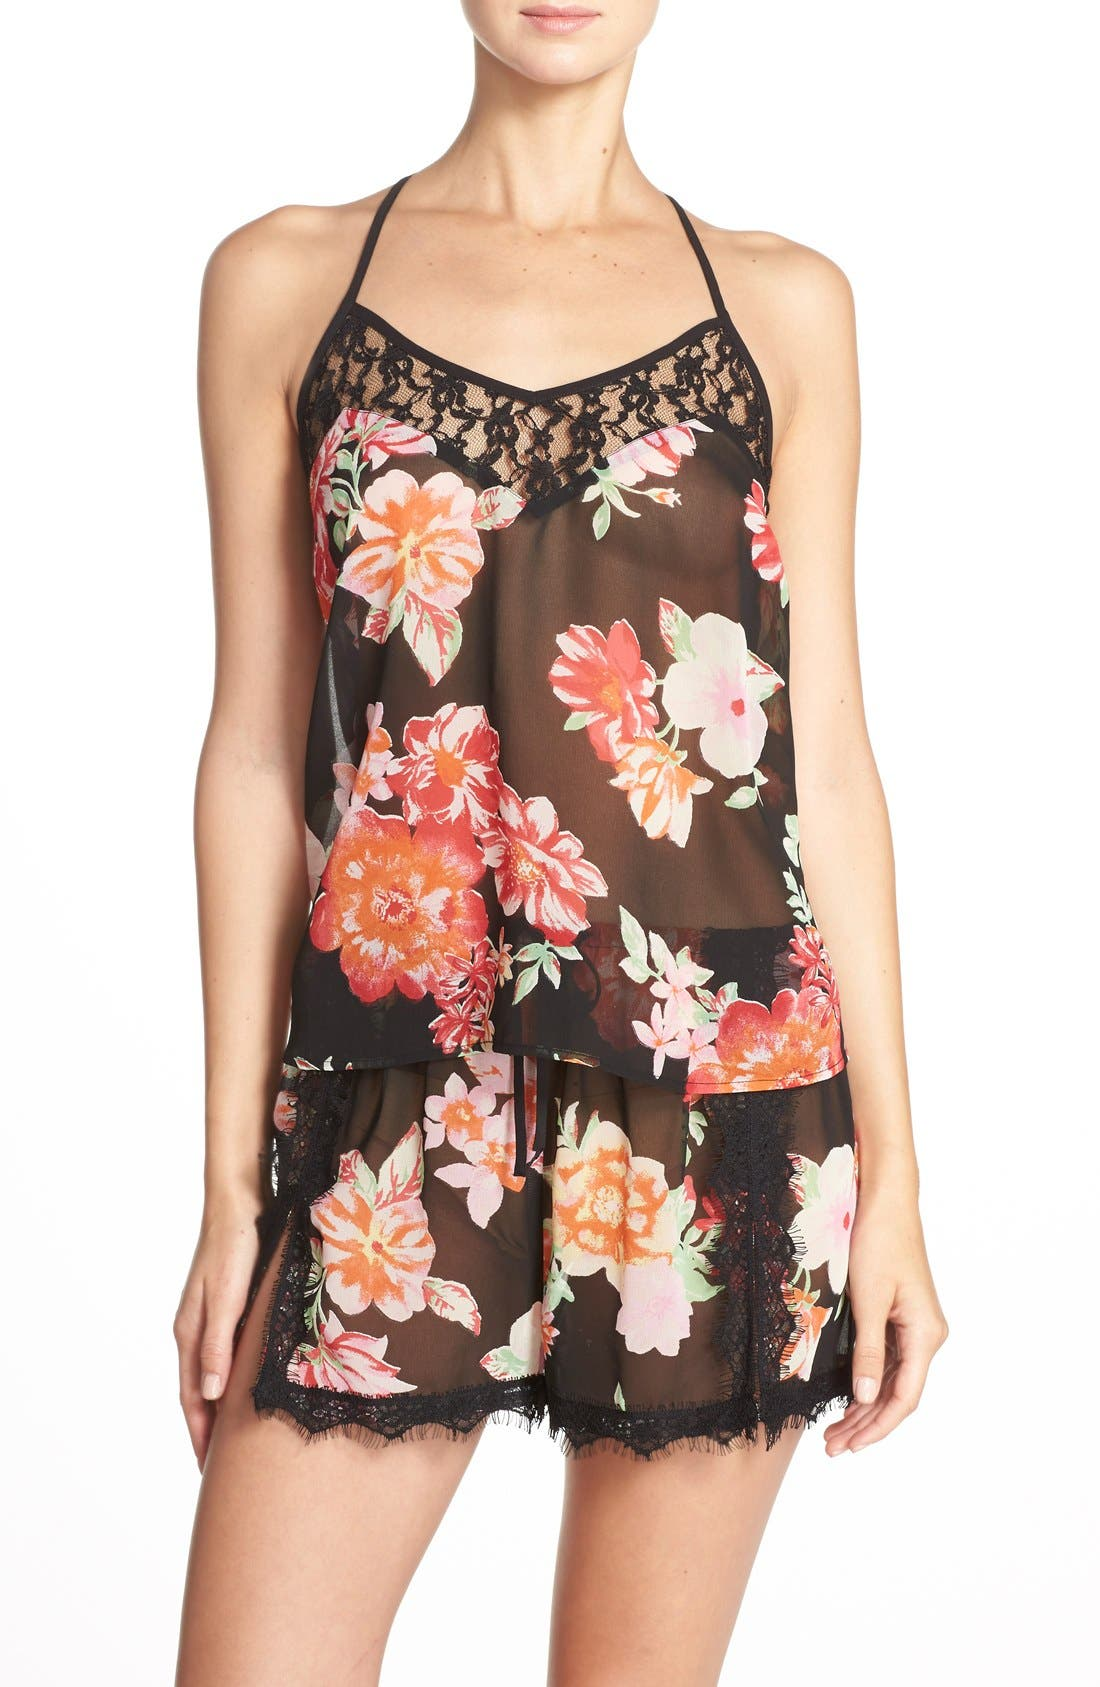 Alternate Image 1 Selected - Band of Gypsies Racerback Floral Chiffon Camisole